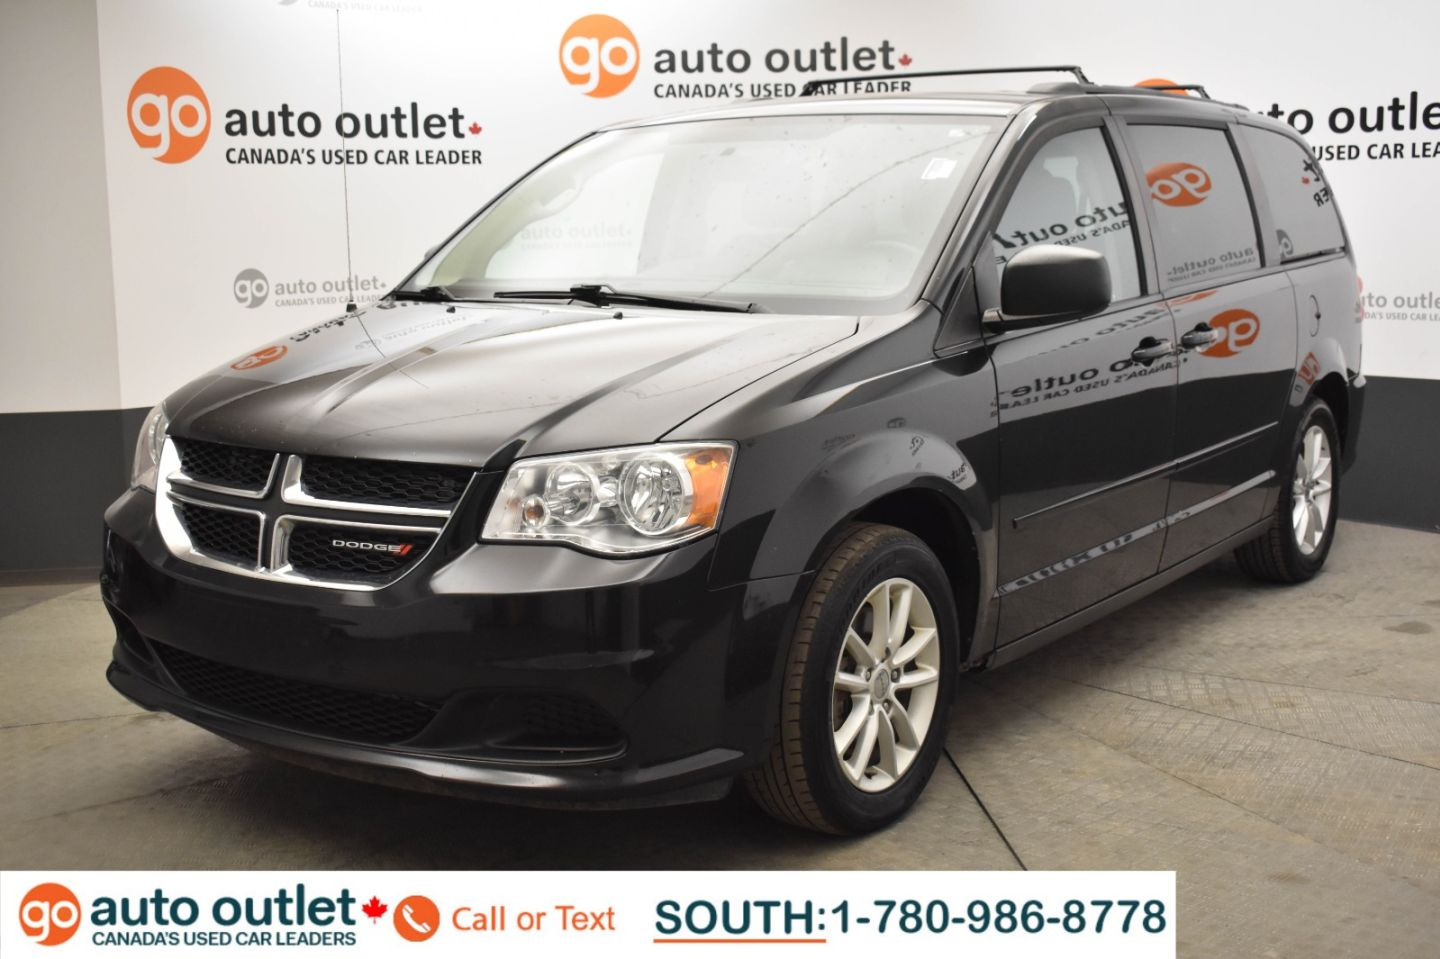 2016 Dodge Grand Caravan SXT for sale in Leduc, Alberta